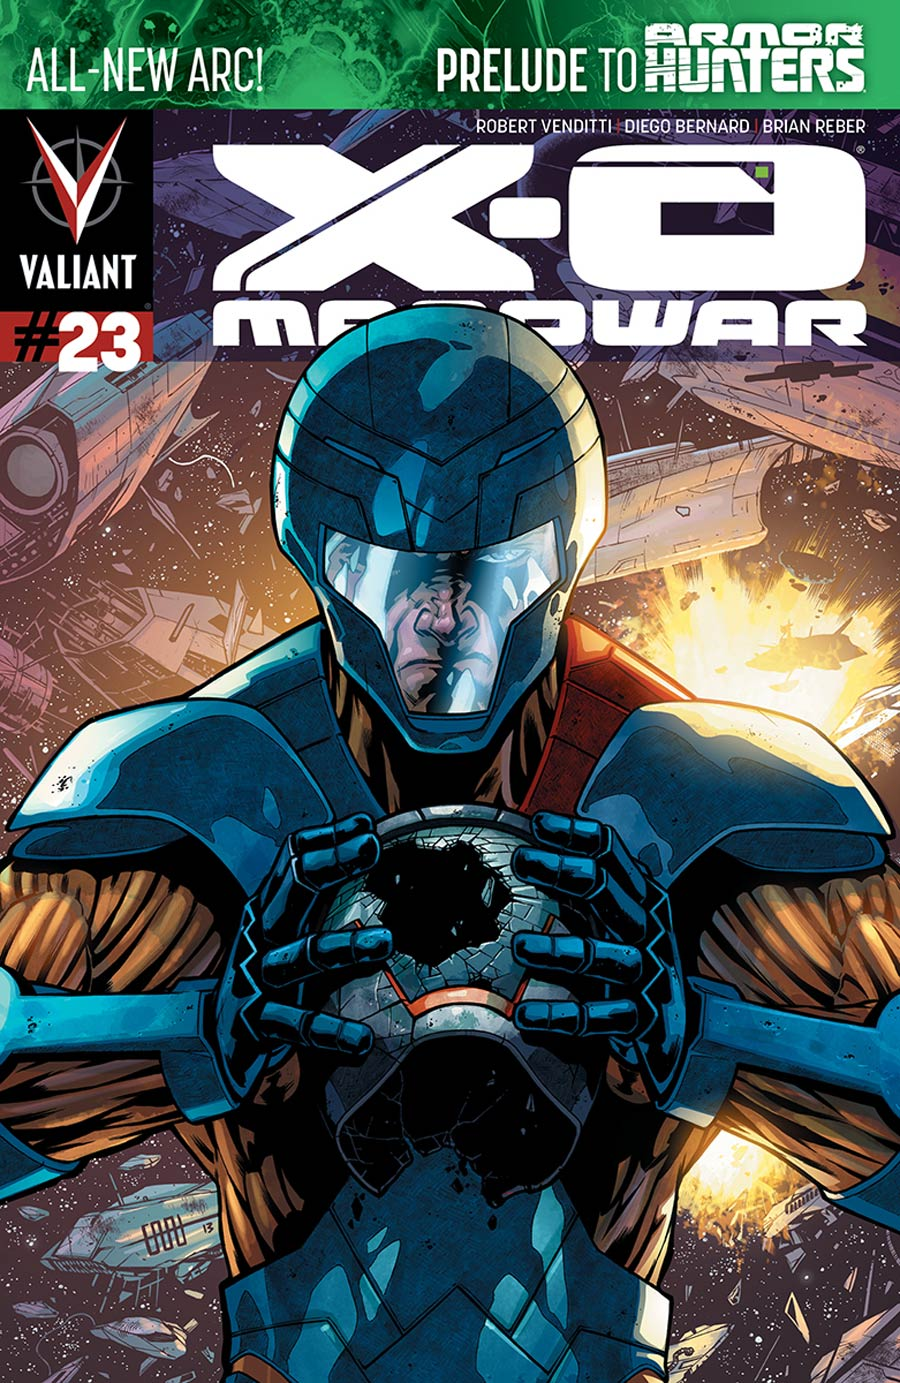 X-O Manowar Vol 3 #23 Cover A 1st Ptg Regular CAFU Cover (Armor Hunters Prelude)